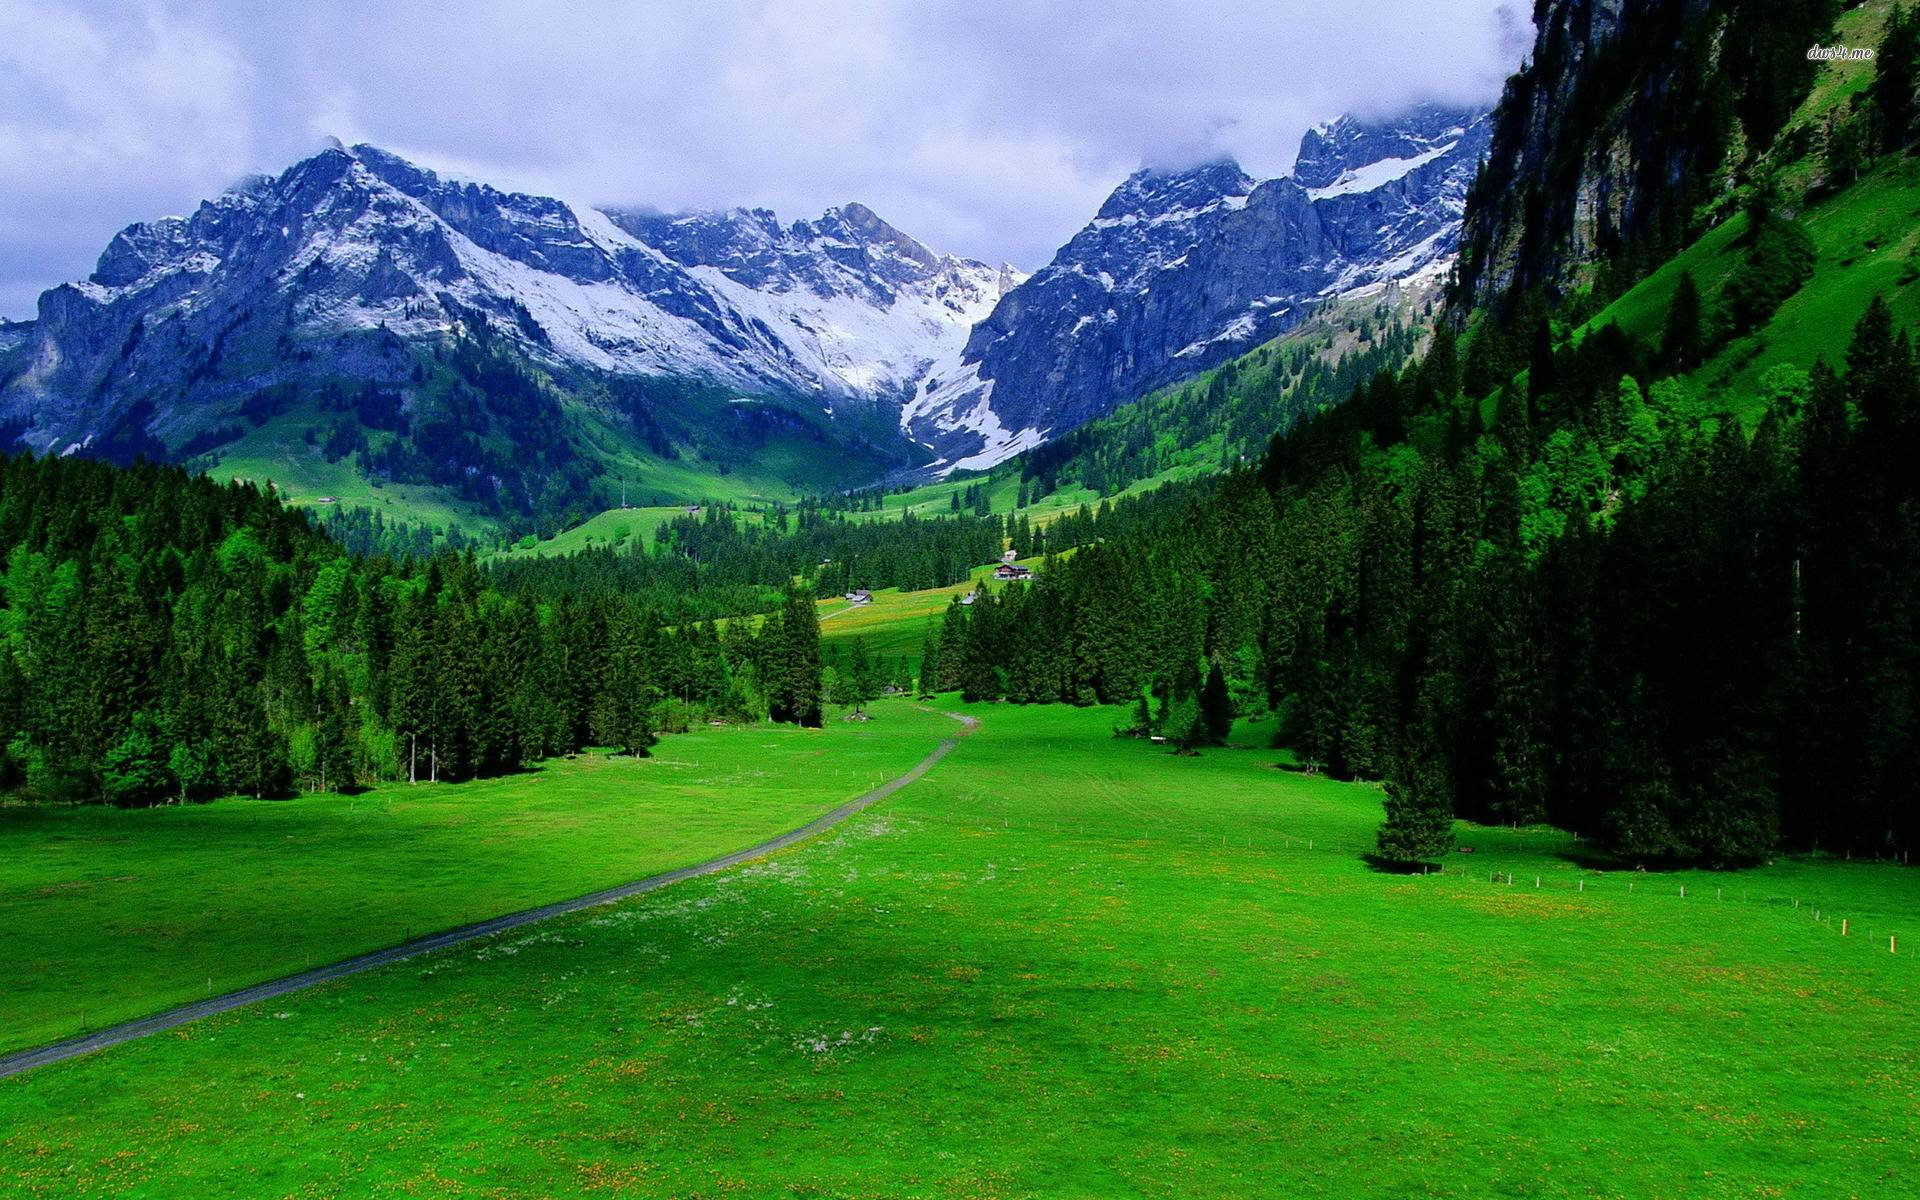 The Alps In Switzerland Nature Wallpaper 1920x1200 px Free ...